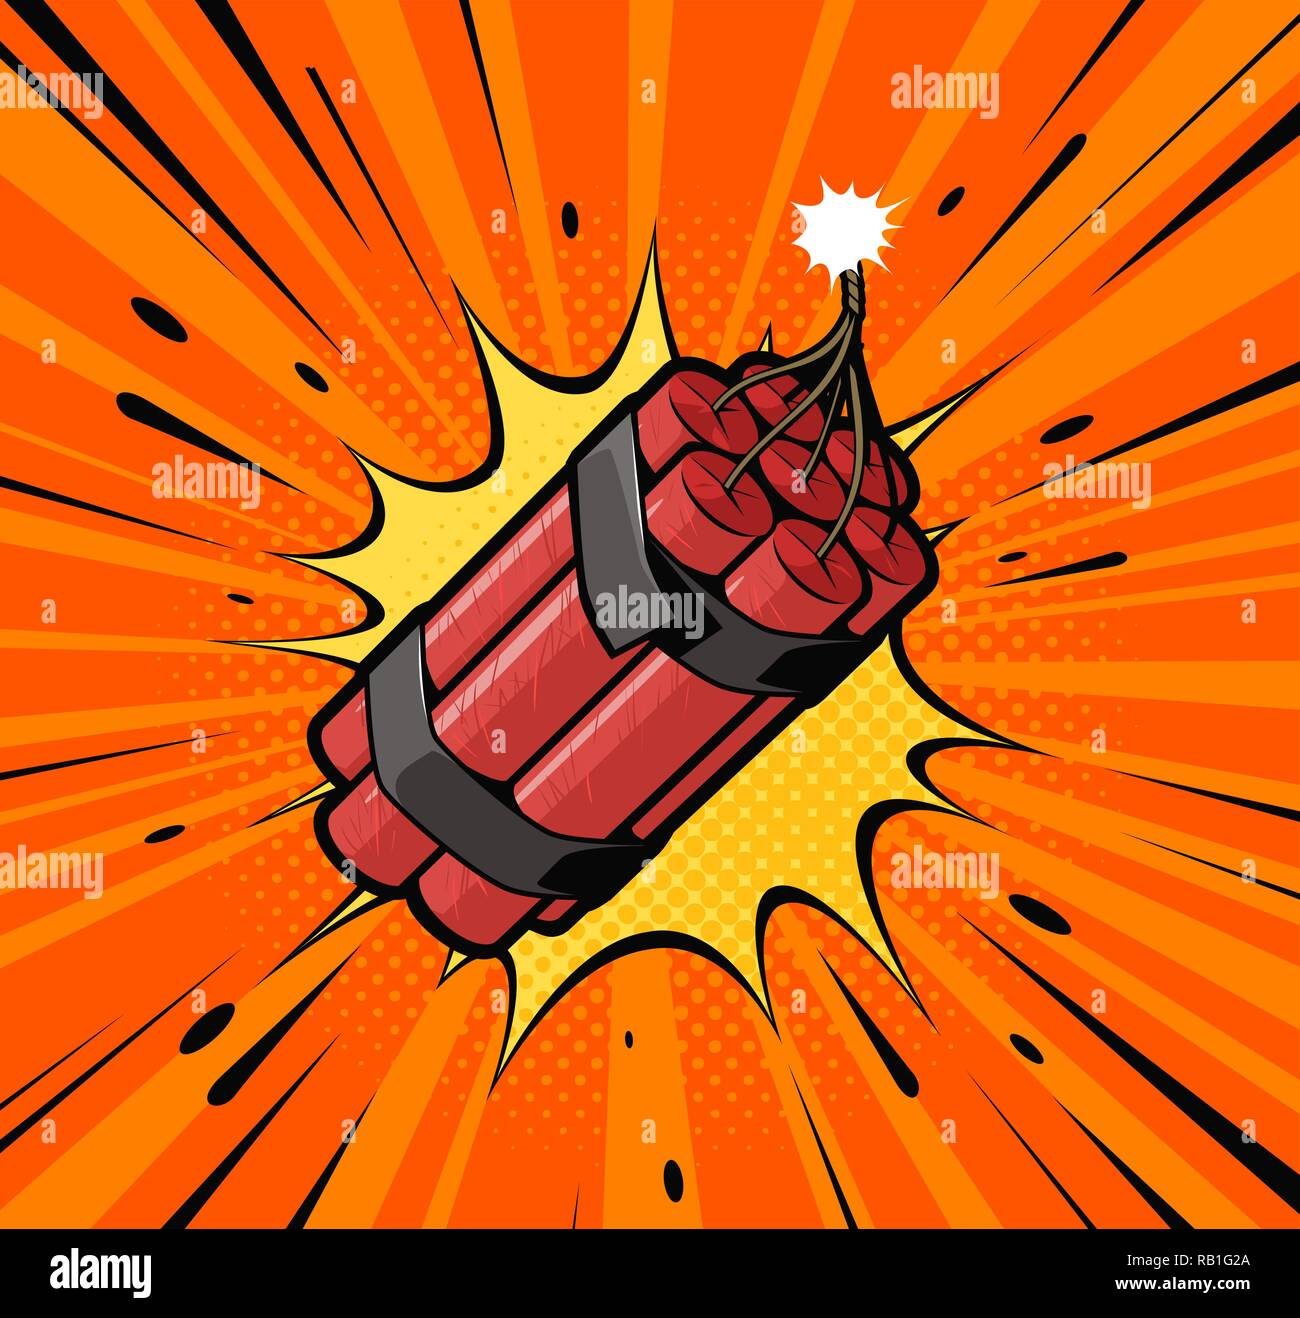 dynamite bomb explosion with burning wick detonate retro pop art style cartoon comic vector illustration stock vector image art alamy https www alamy com dynamite bomb explosion with burning wick detonate retro pop art style cartoon comic vector illustration image230530562 html